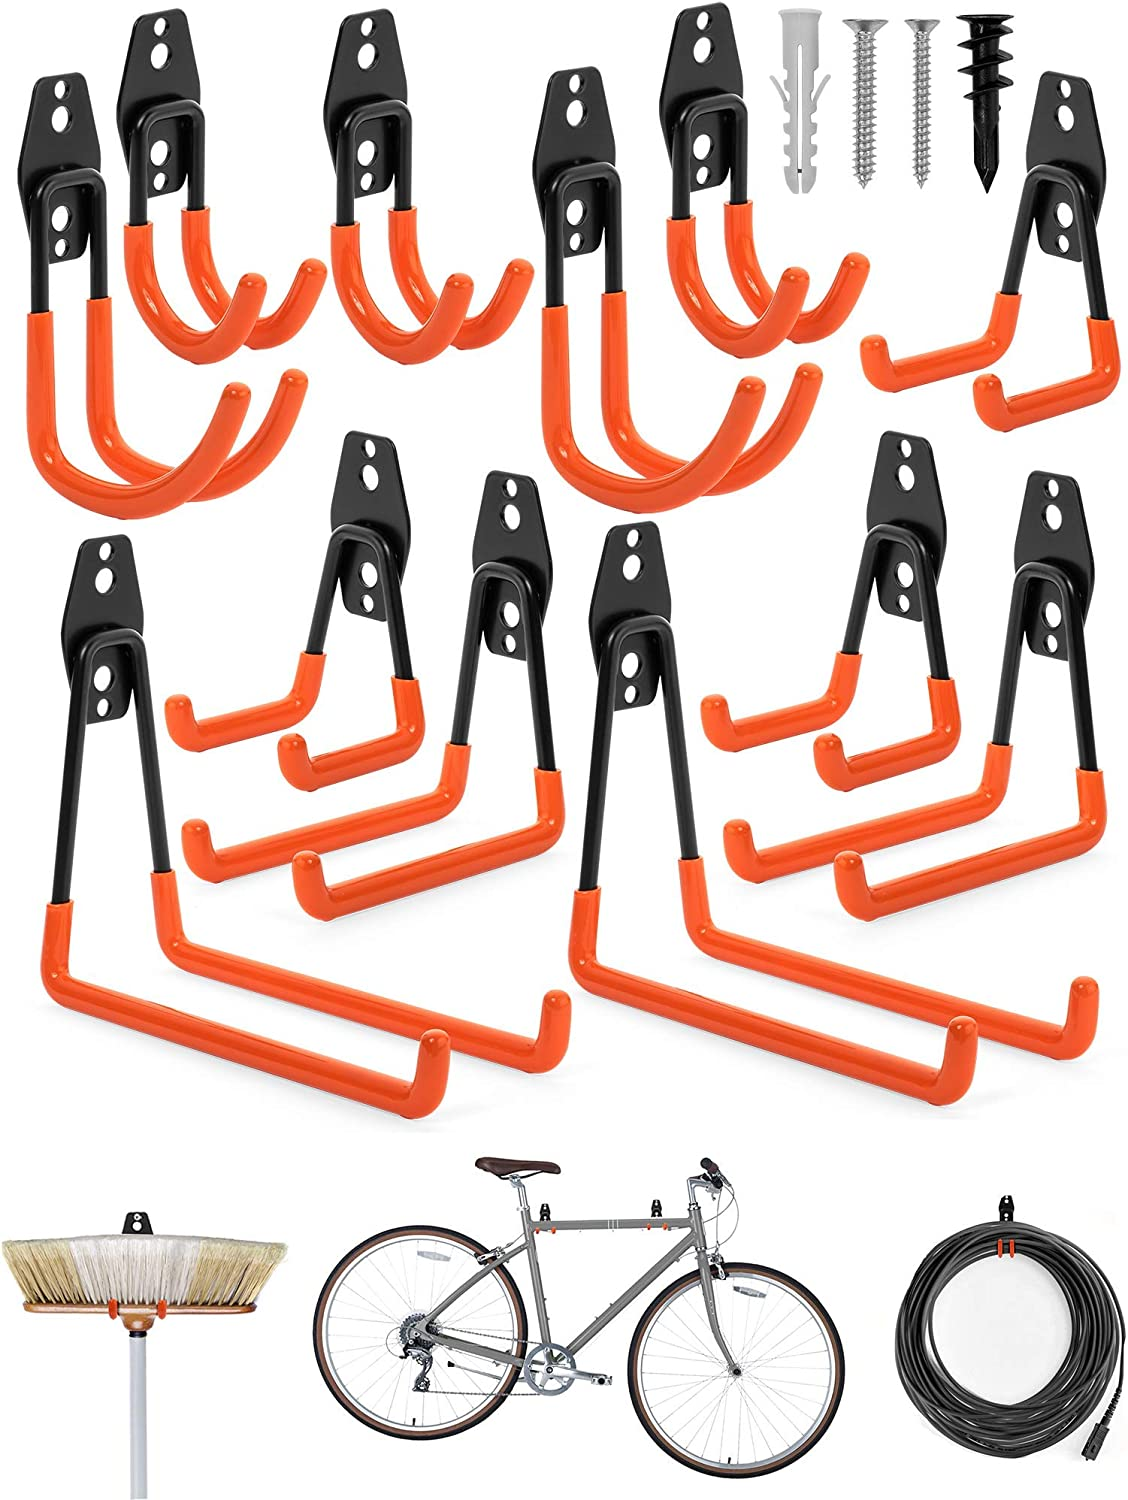 Garage Storage Hooks Heavy Duty Pack of 12 - Garage Wall Hooks for Hanging to Stay Organized - Hooks for Garage Storage Wall Mount for Ladder, Folding Chair, Bikes, Ropes - Garden Tool Hangers